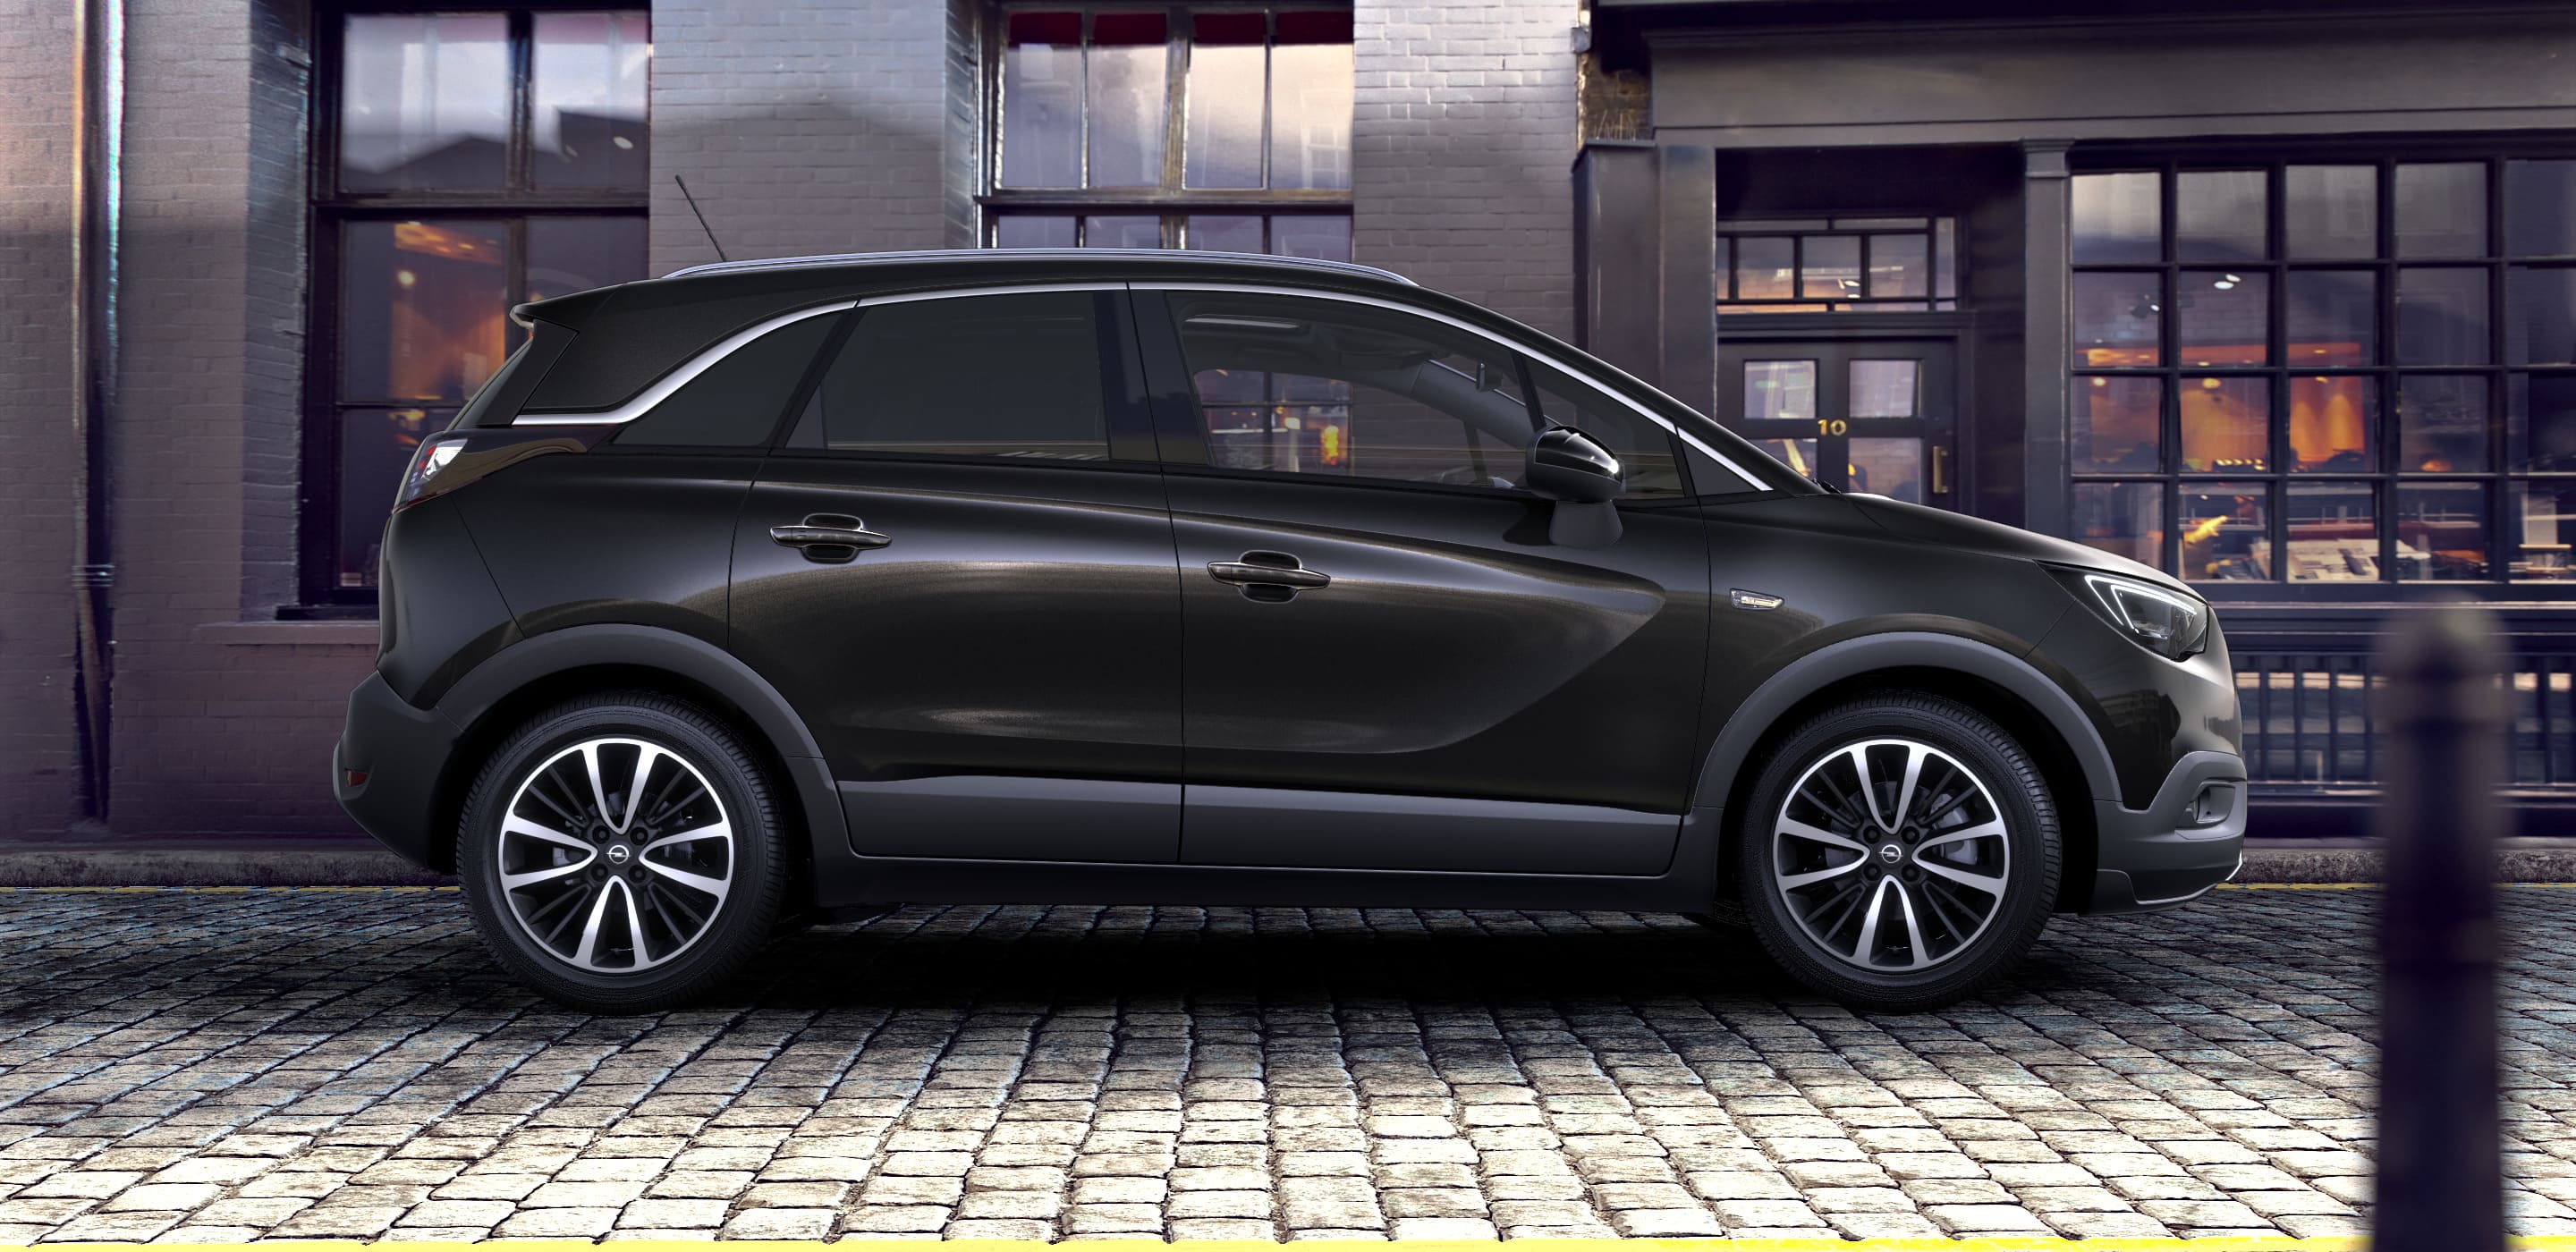 Opel Crossland X Innovation 1.2 Turbo.